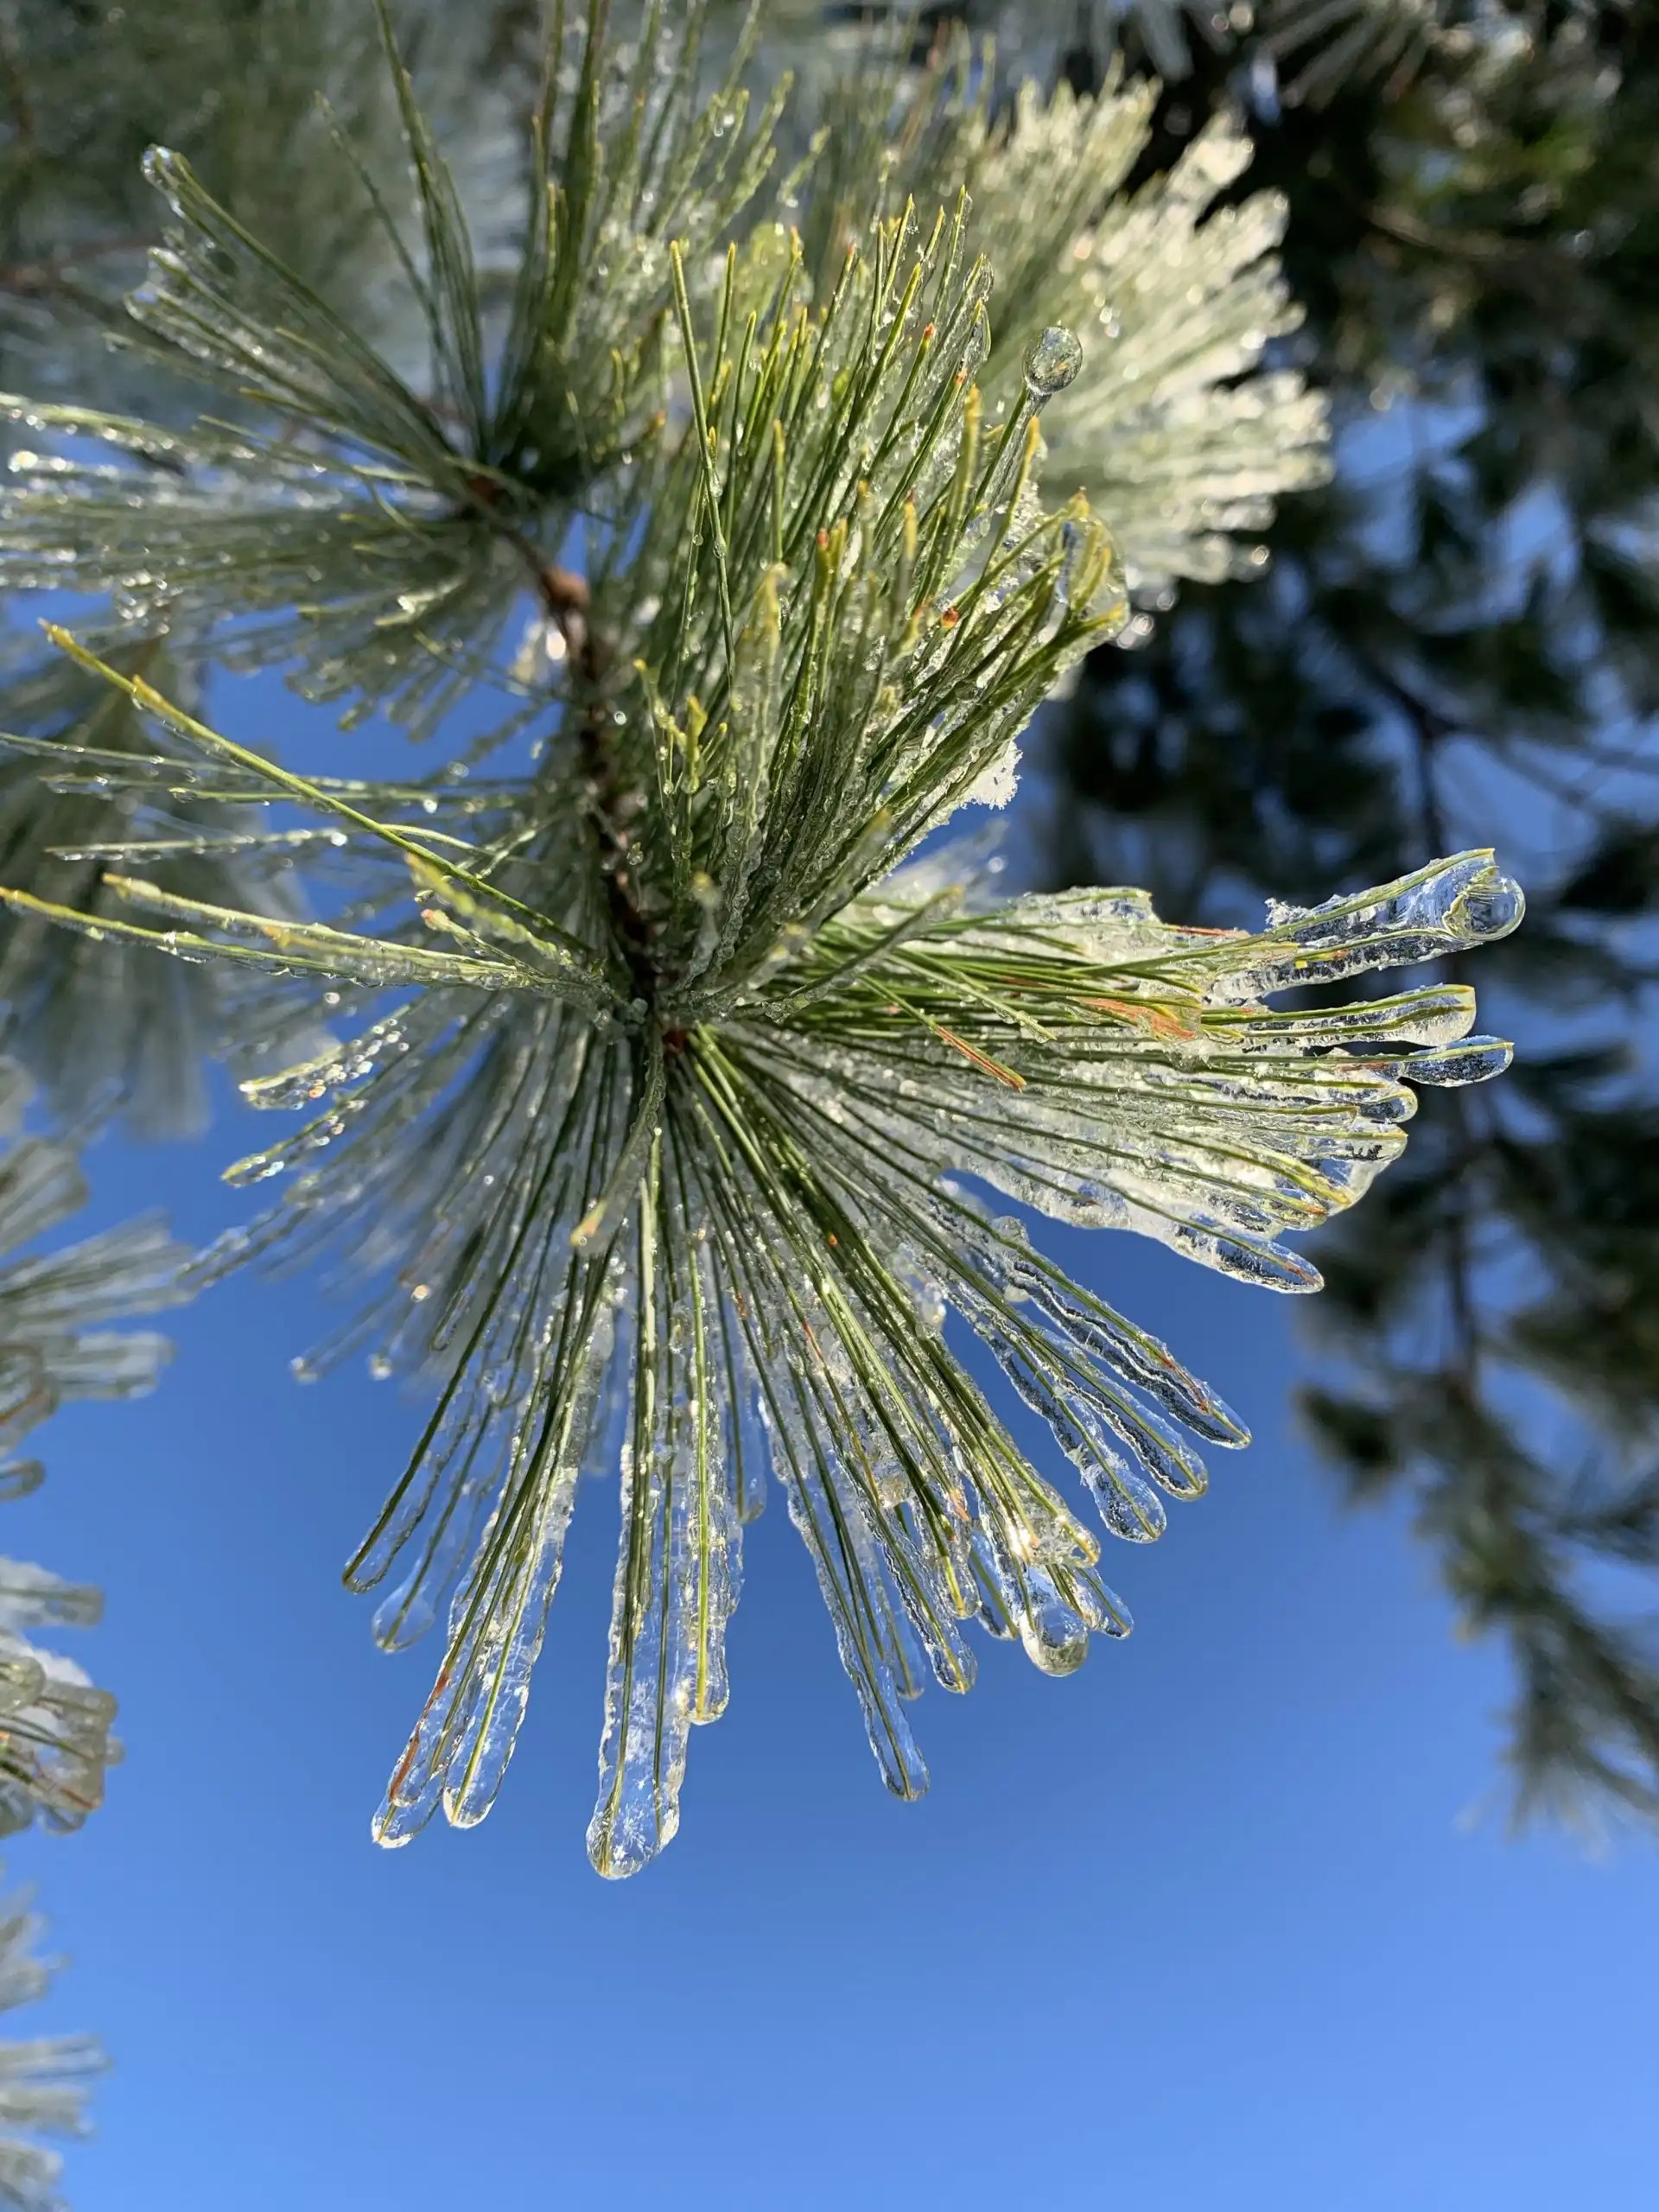 iPhone XS Max photography example: Frozen pine needles set against blue sky